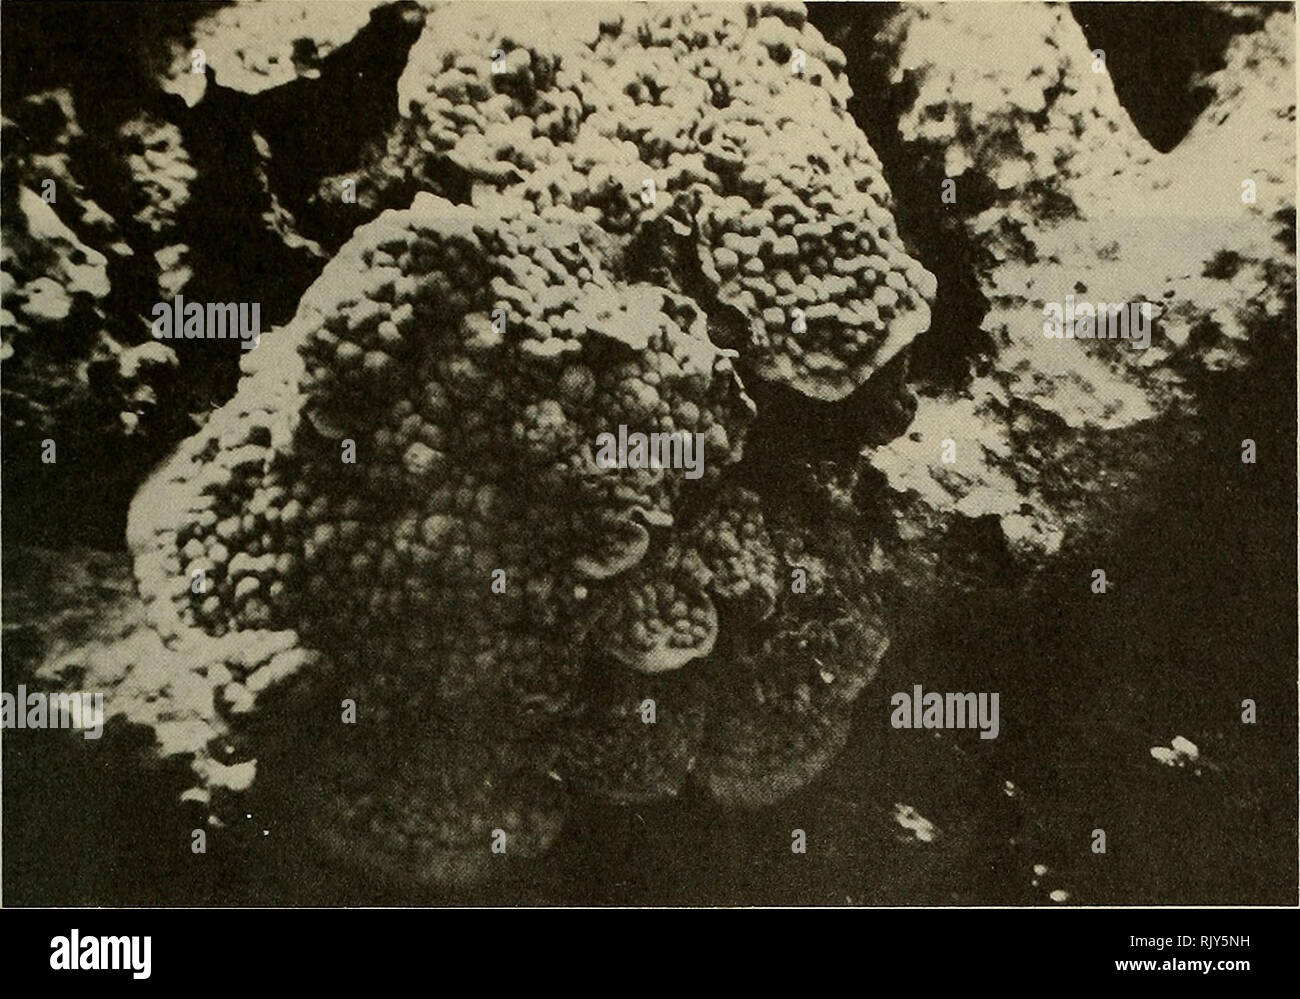 . Atoll research bulletin. Coral reefs and islands; Marine biology; Marine sciences. Plate 14 Plate like growth of Porites astreoides. â¢â¢^v ^1 * i y 'yfc >* â â * . Plate 15 Bladed Millepora complanata and branched alcicornis on Patch Reef II.. Please note that these images are extracted from scanned page images that may have been digitally enhanced for readability - coloration and appearance of these illustrations may not perfectly resemble the original work.. Smithsonian Institution. Press; National Research Council (U. S. ). Pacific Science Board; Smithsonian Institution; National Muse - Stock Image